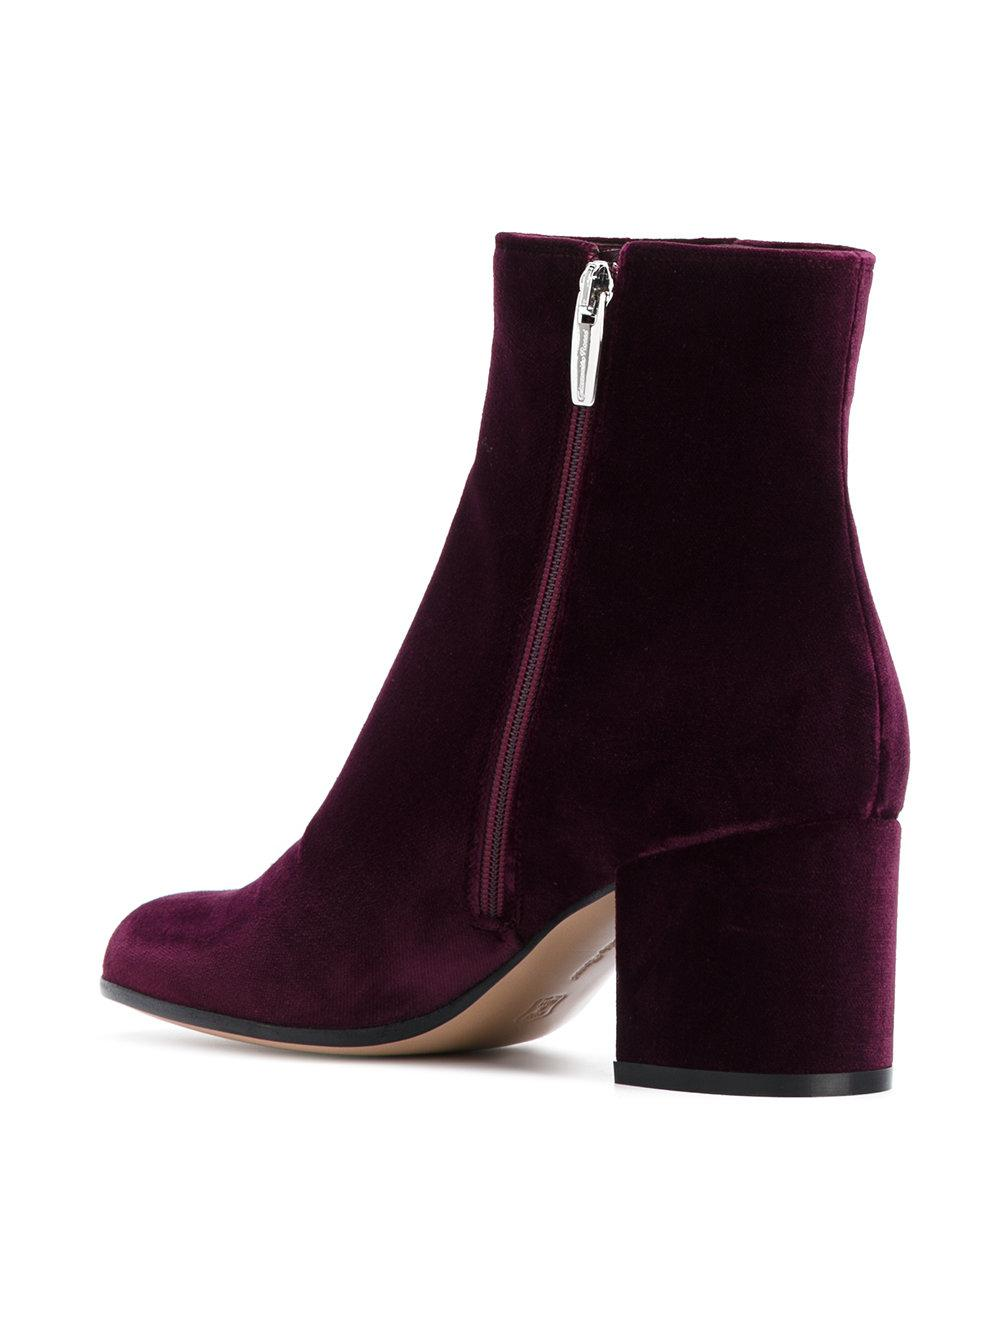 Margaux ankle boots - Pink & Purple Gianvito Rossi chjlpcK